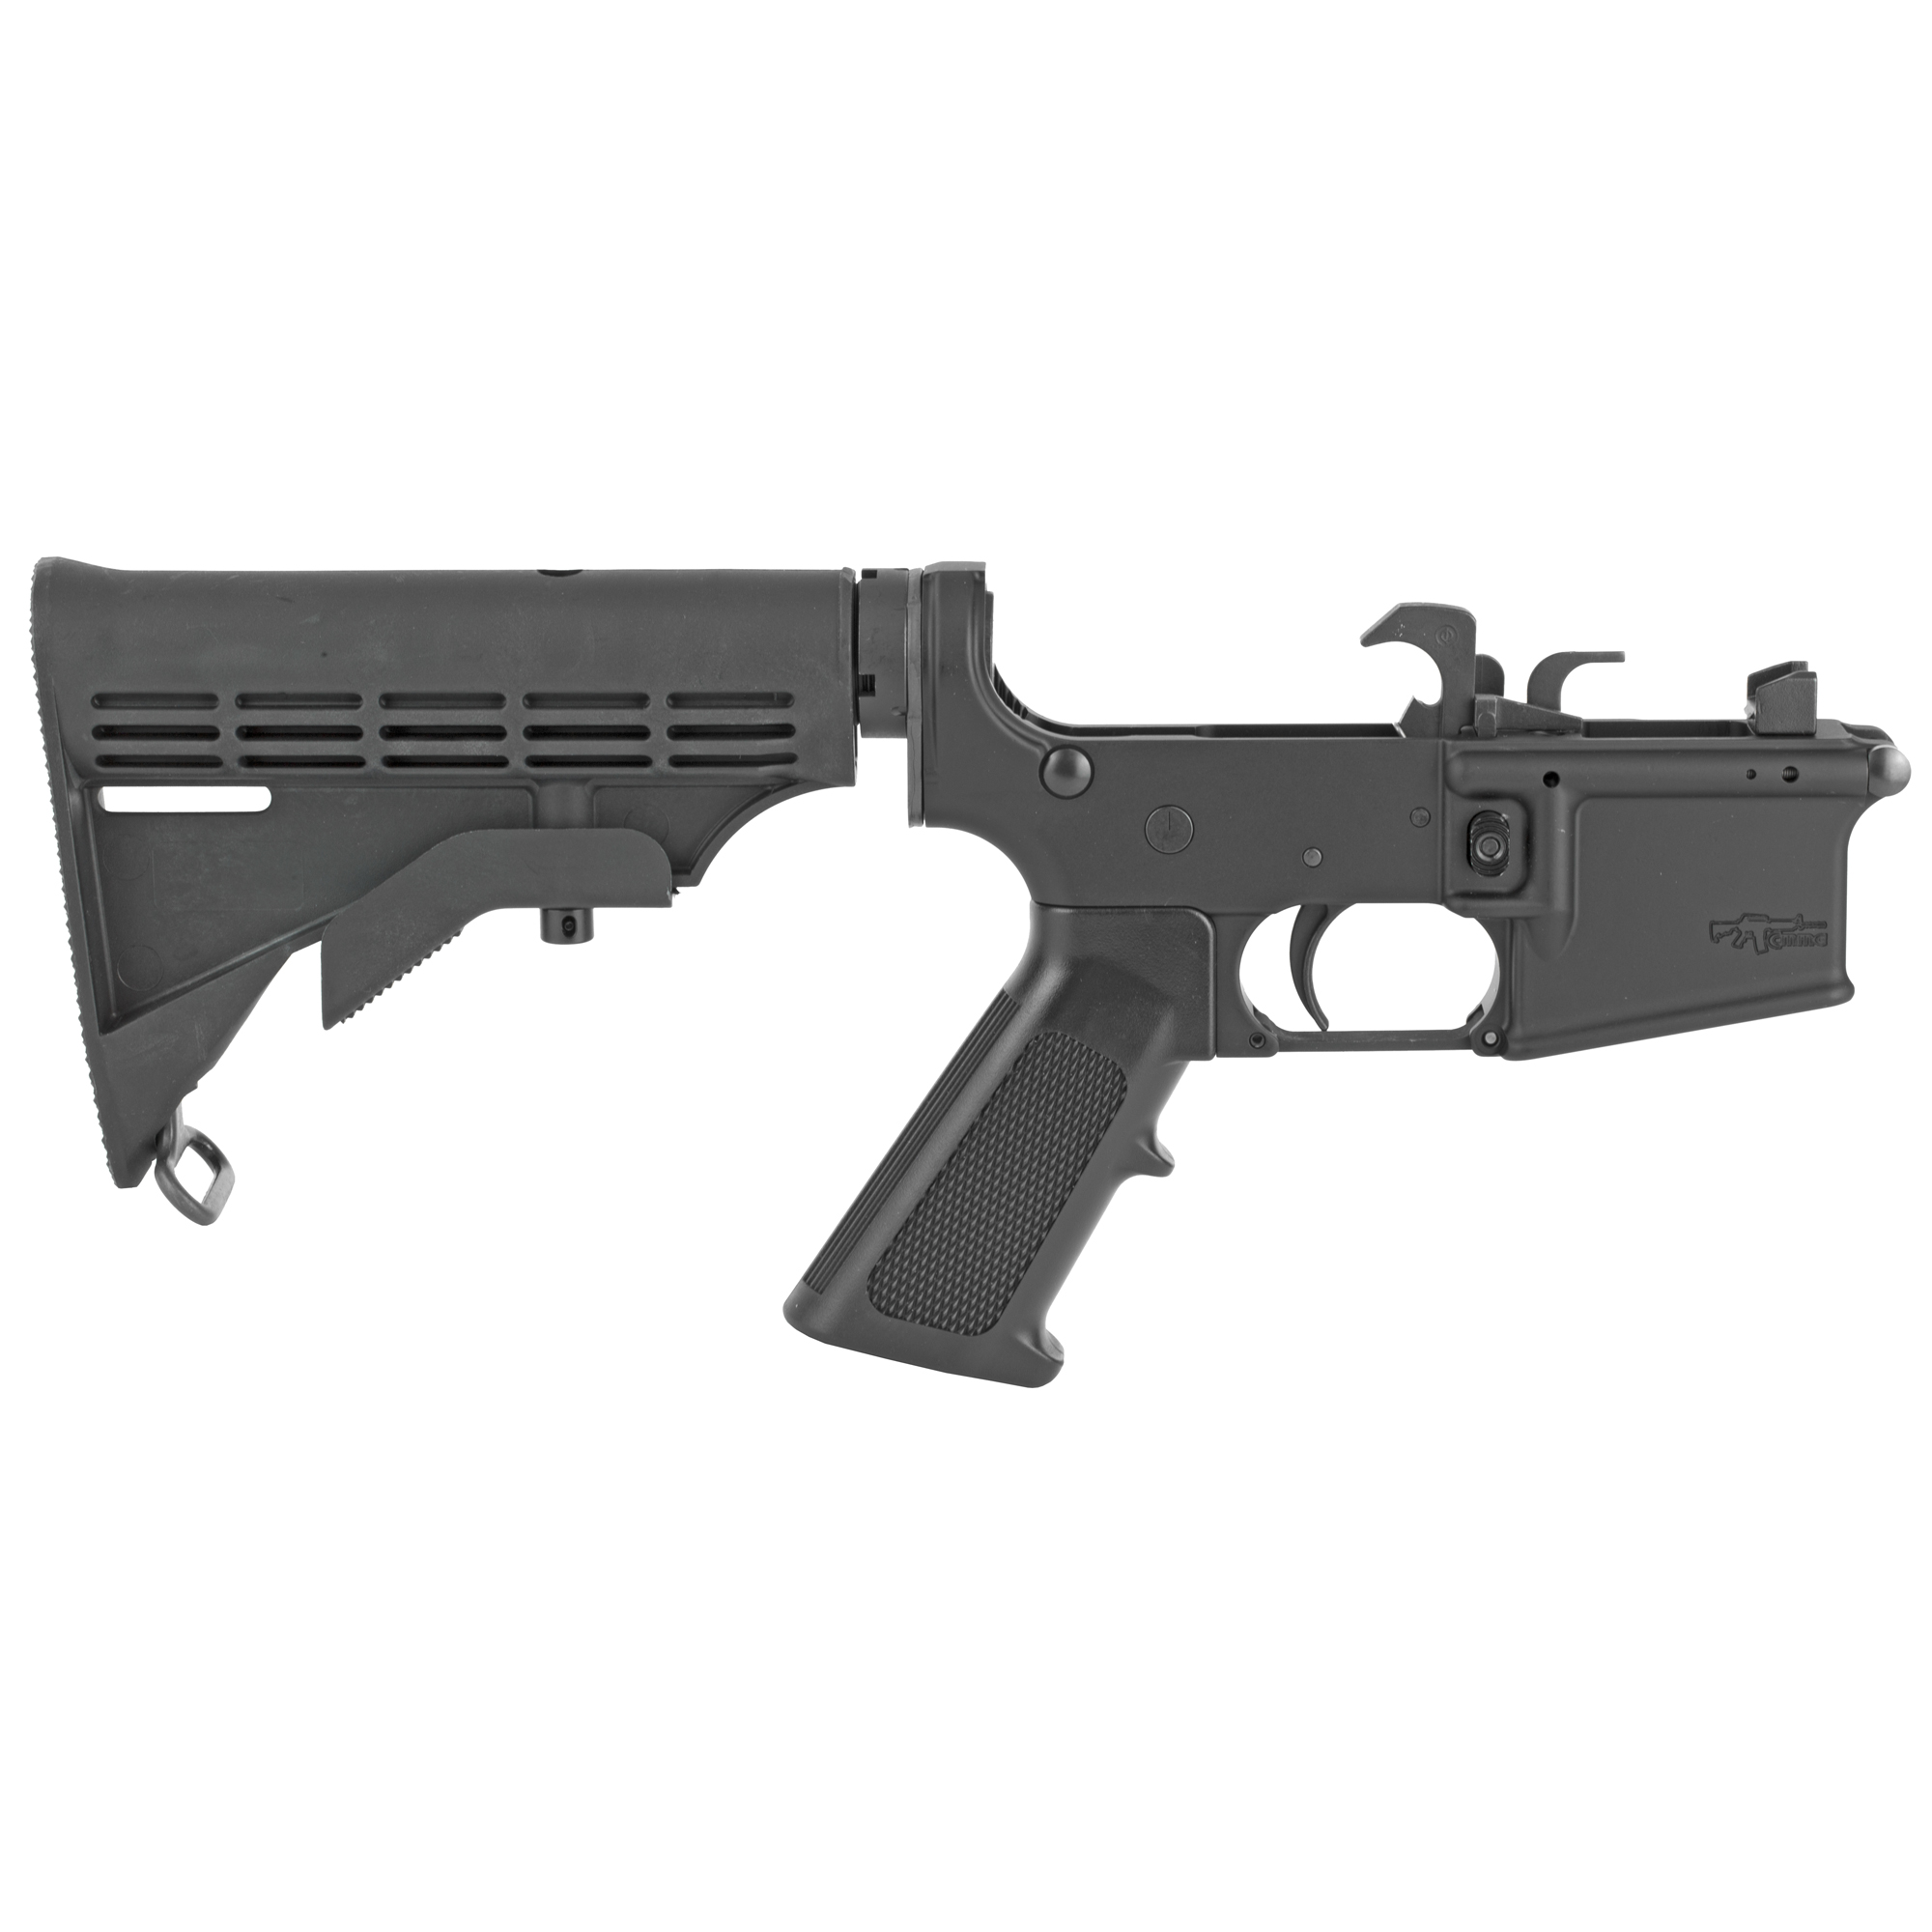 CMMG Resolute 100 Complete Lower Receiver 9MM - Black-img-1